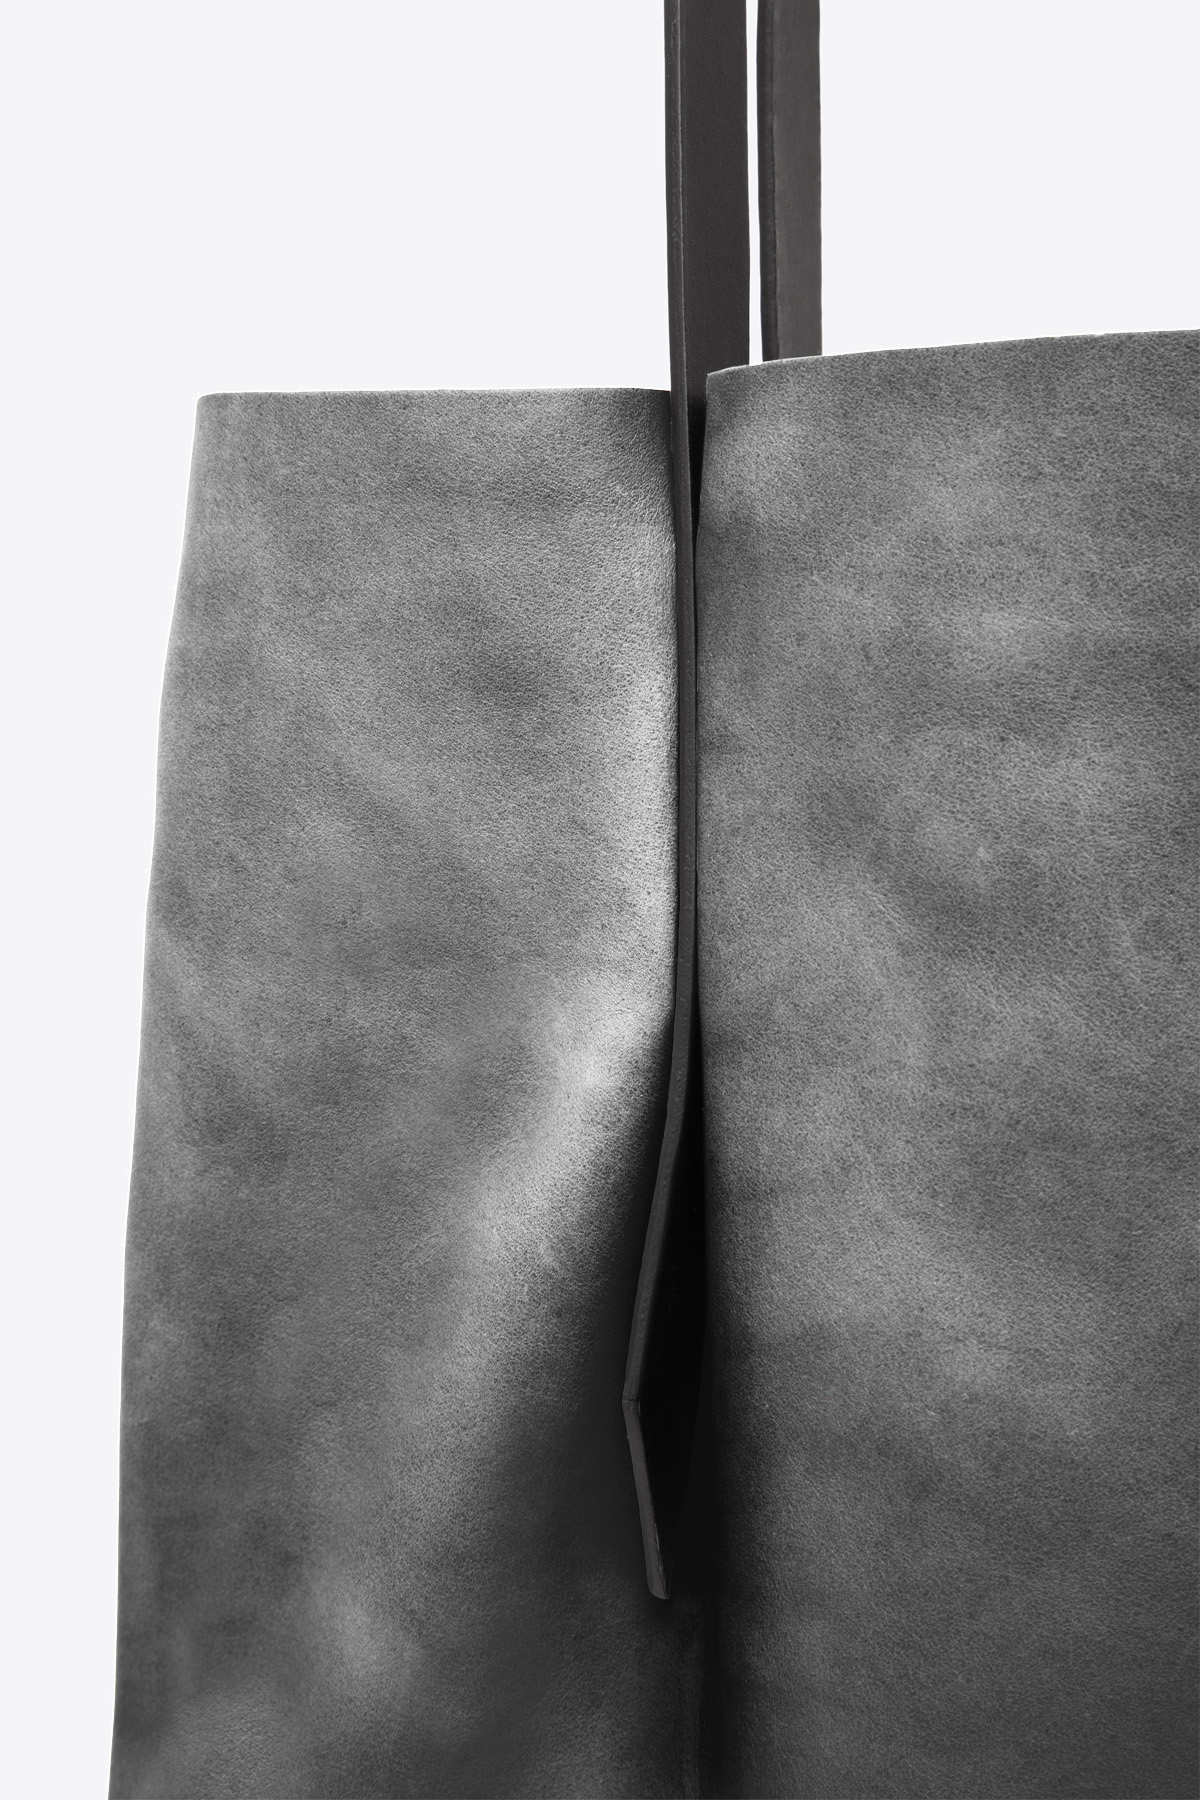 dclr006-shoppingbag-a2-shadowgray-detail